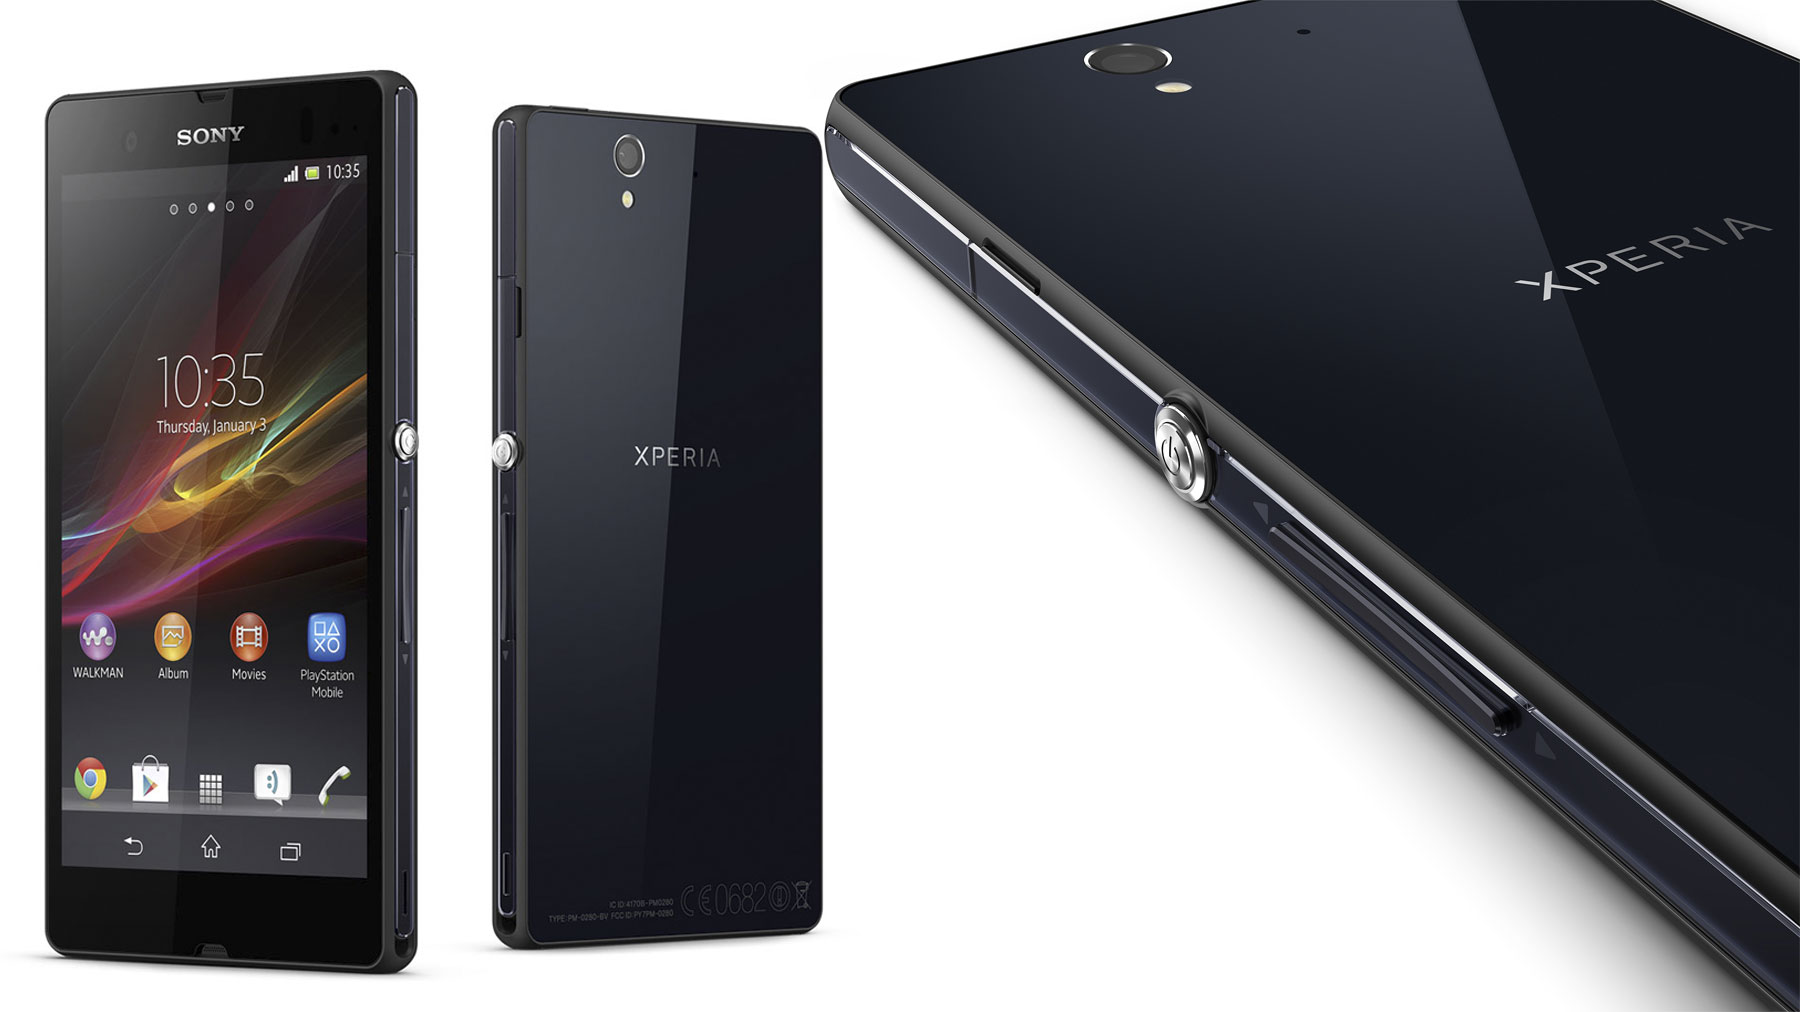 Sony Xperia Z Ultra official specifications and launch date